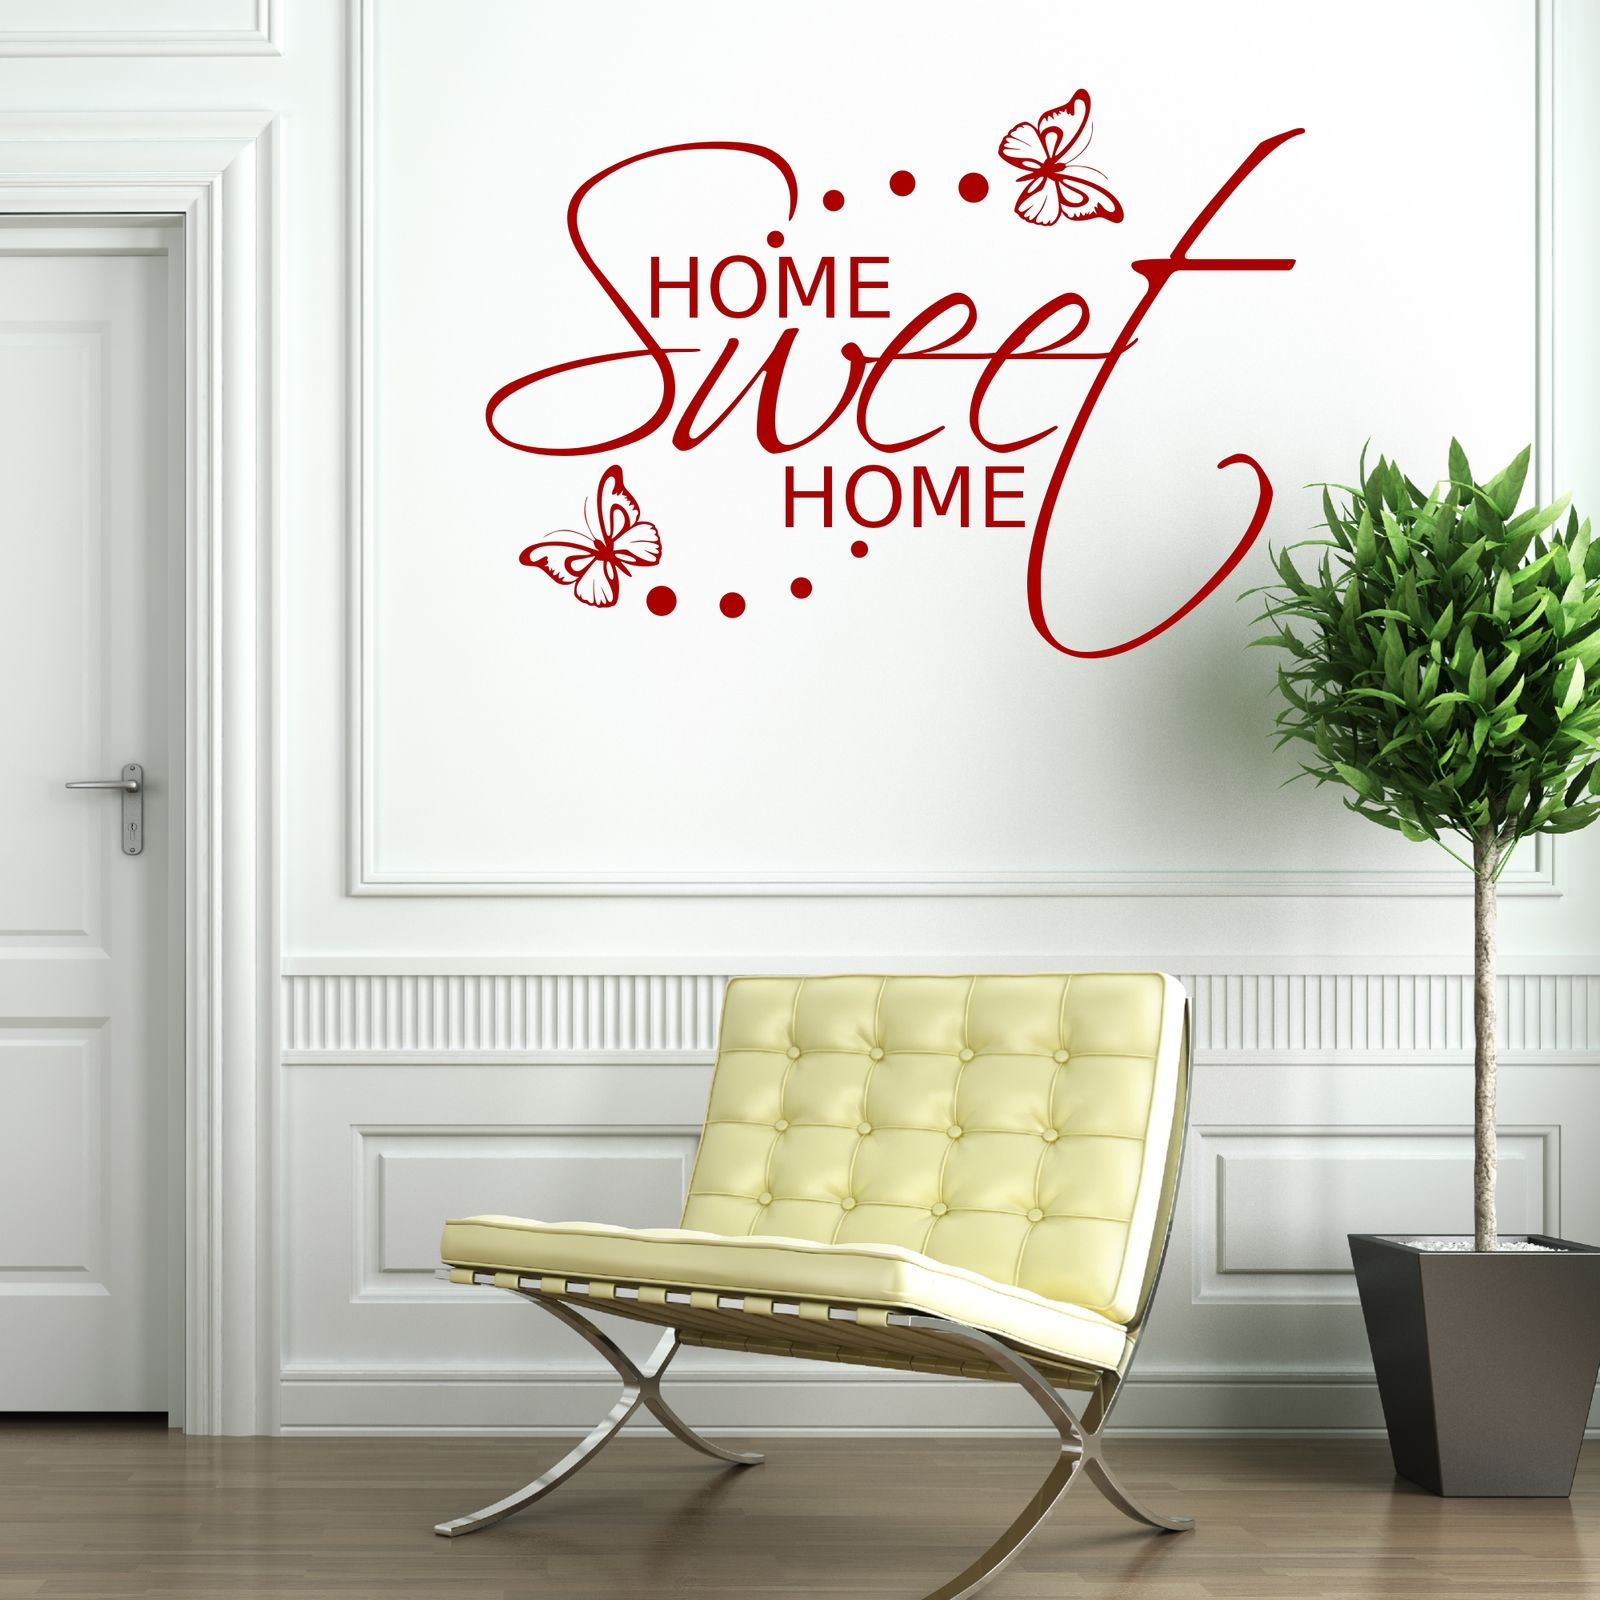 Superior Home Sweet Home Wall Sticker Art Room Gift  Part 13